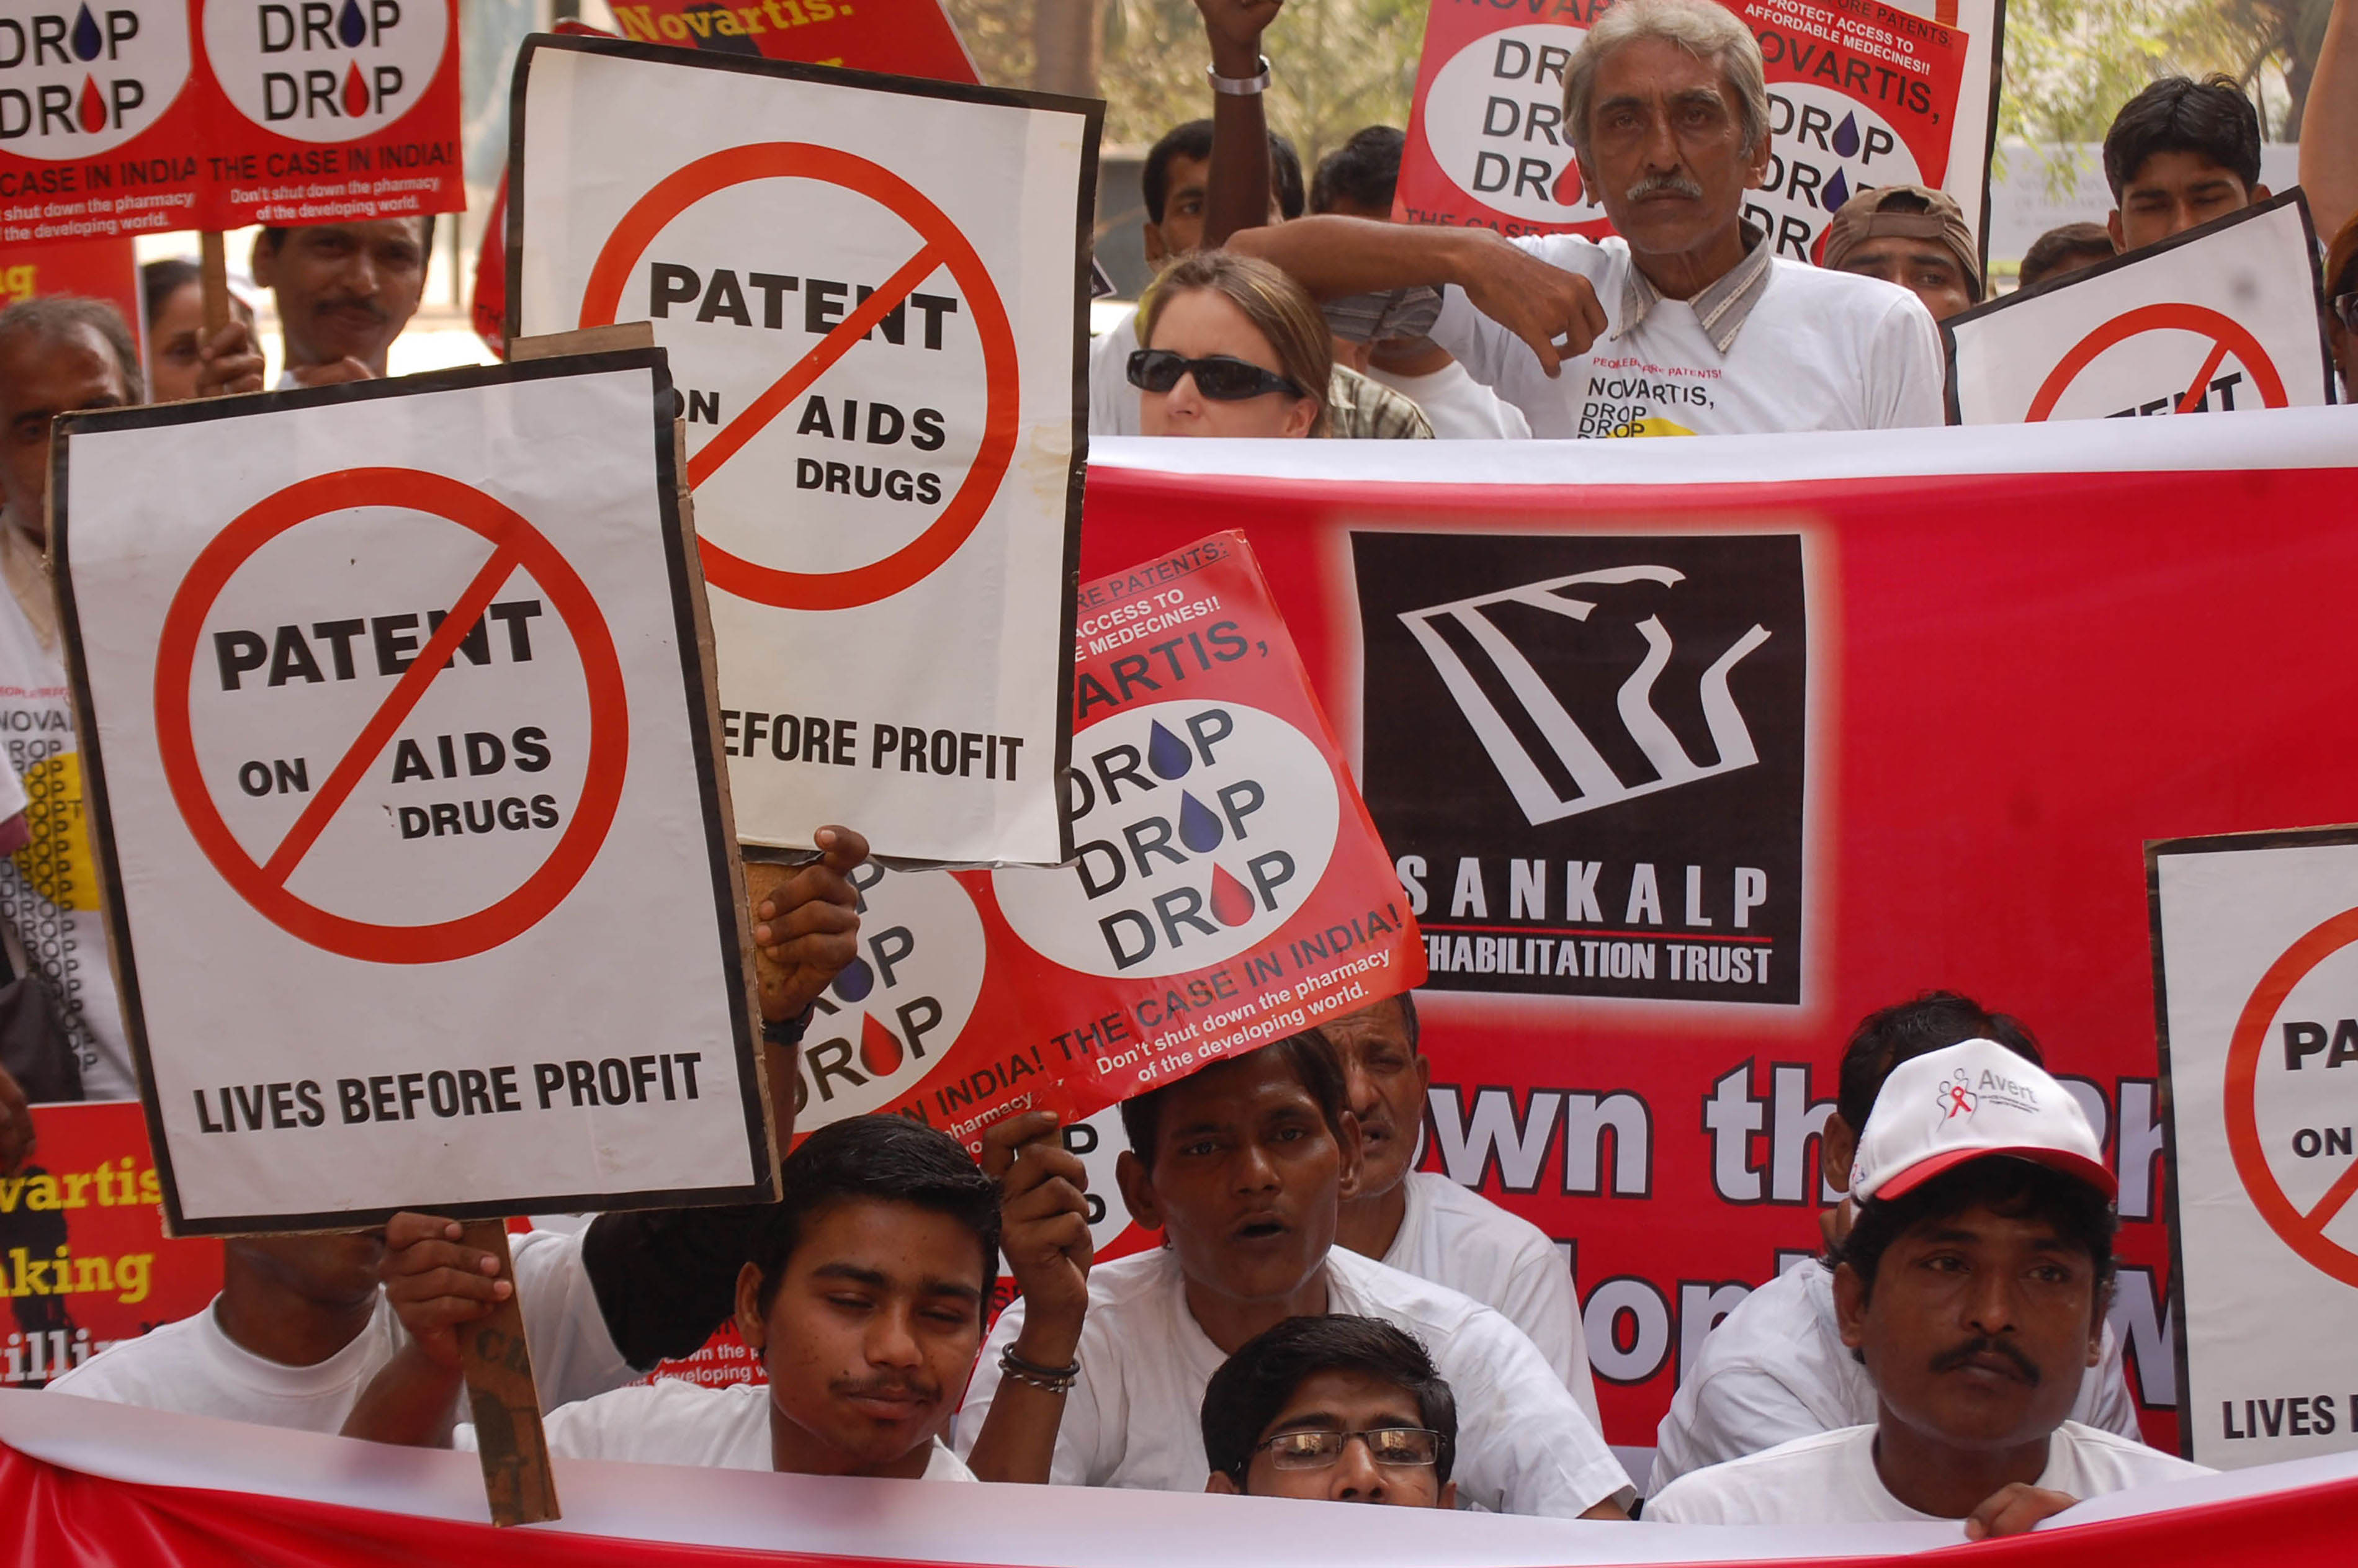 A protest was organised by Indian civil society on World AIDS Day, 1 December 2011, in front of Novartis' Mumbai Office to safeguard India's patent laws for companies to produce affordable generic medicines.